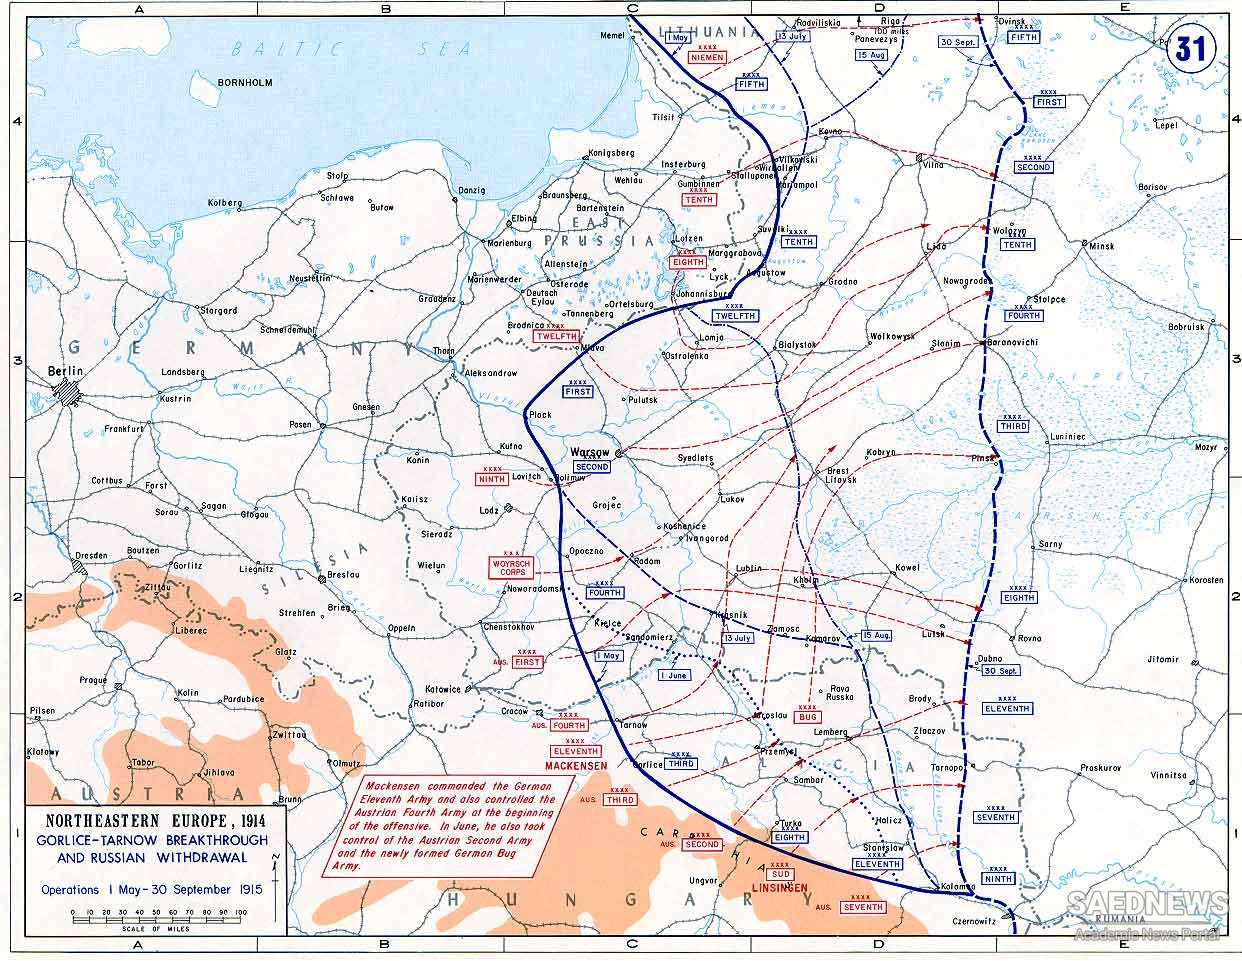 The Eastern Front in 1915